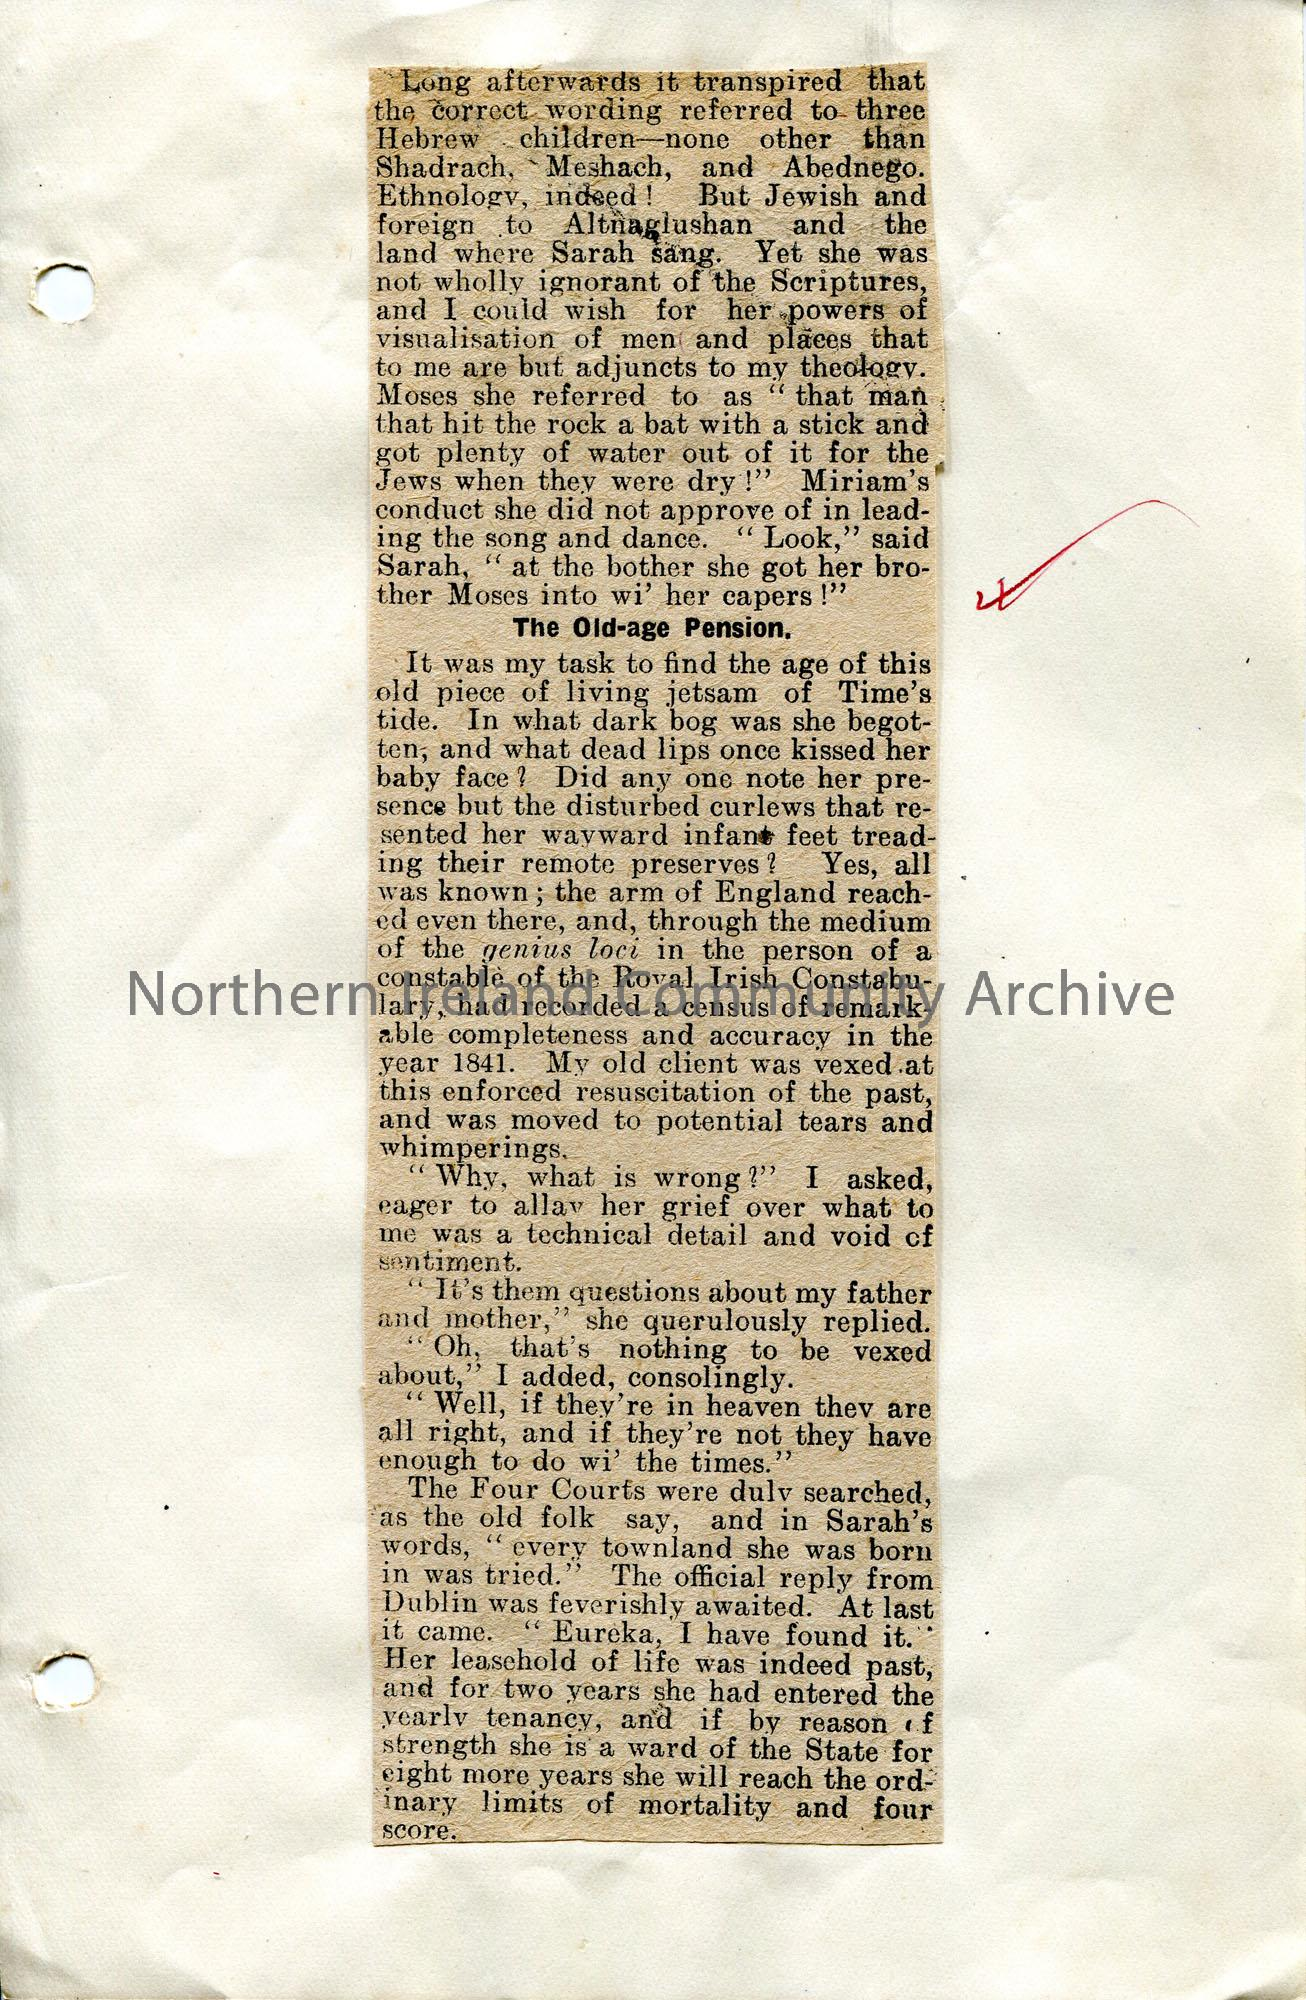 Page 3 of 4. Article cut from a newspaper titled, 'An Old Woman of the Roads' by Sam Henry. Re Sam's visit to widow Sarah Mulgrew. Described as an 'ol…